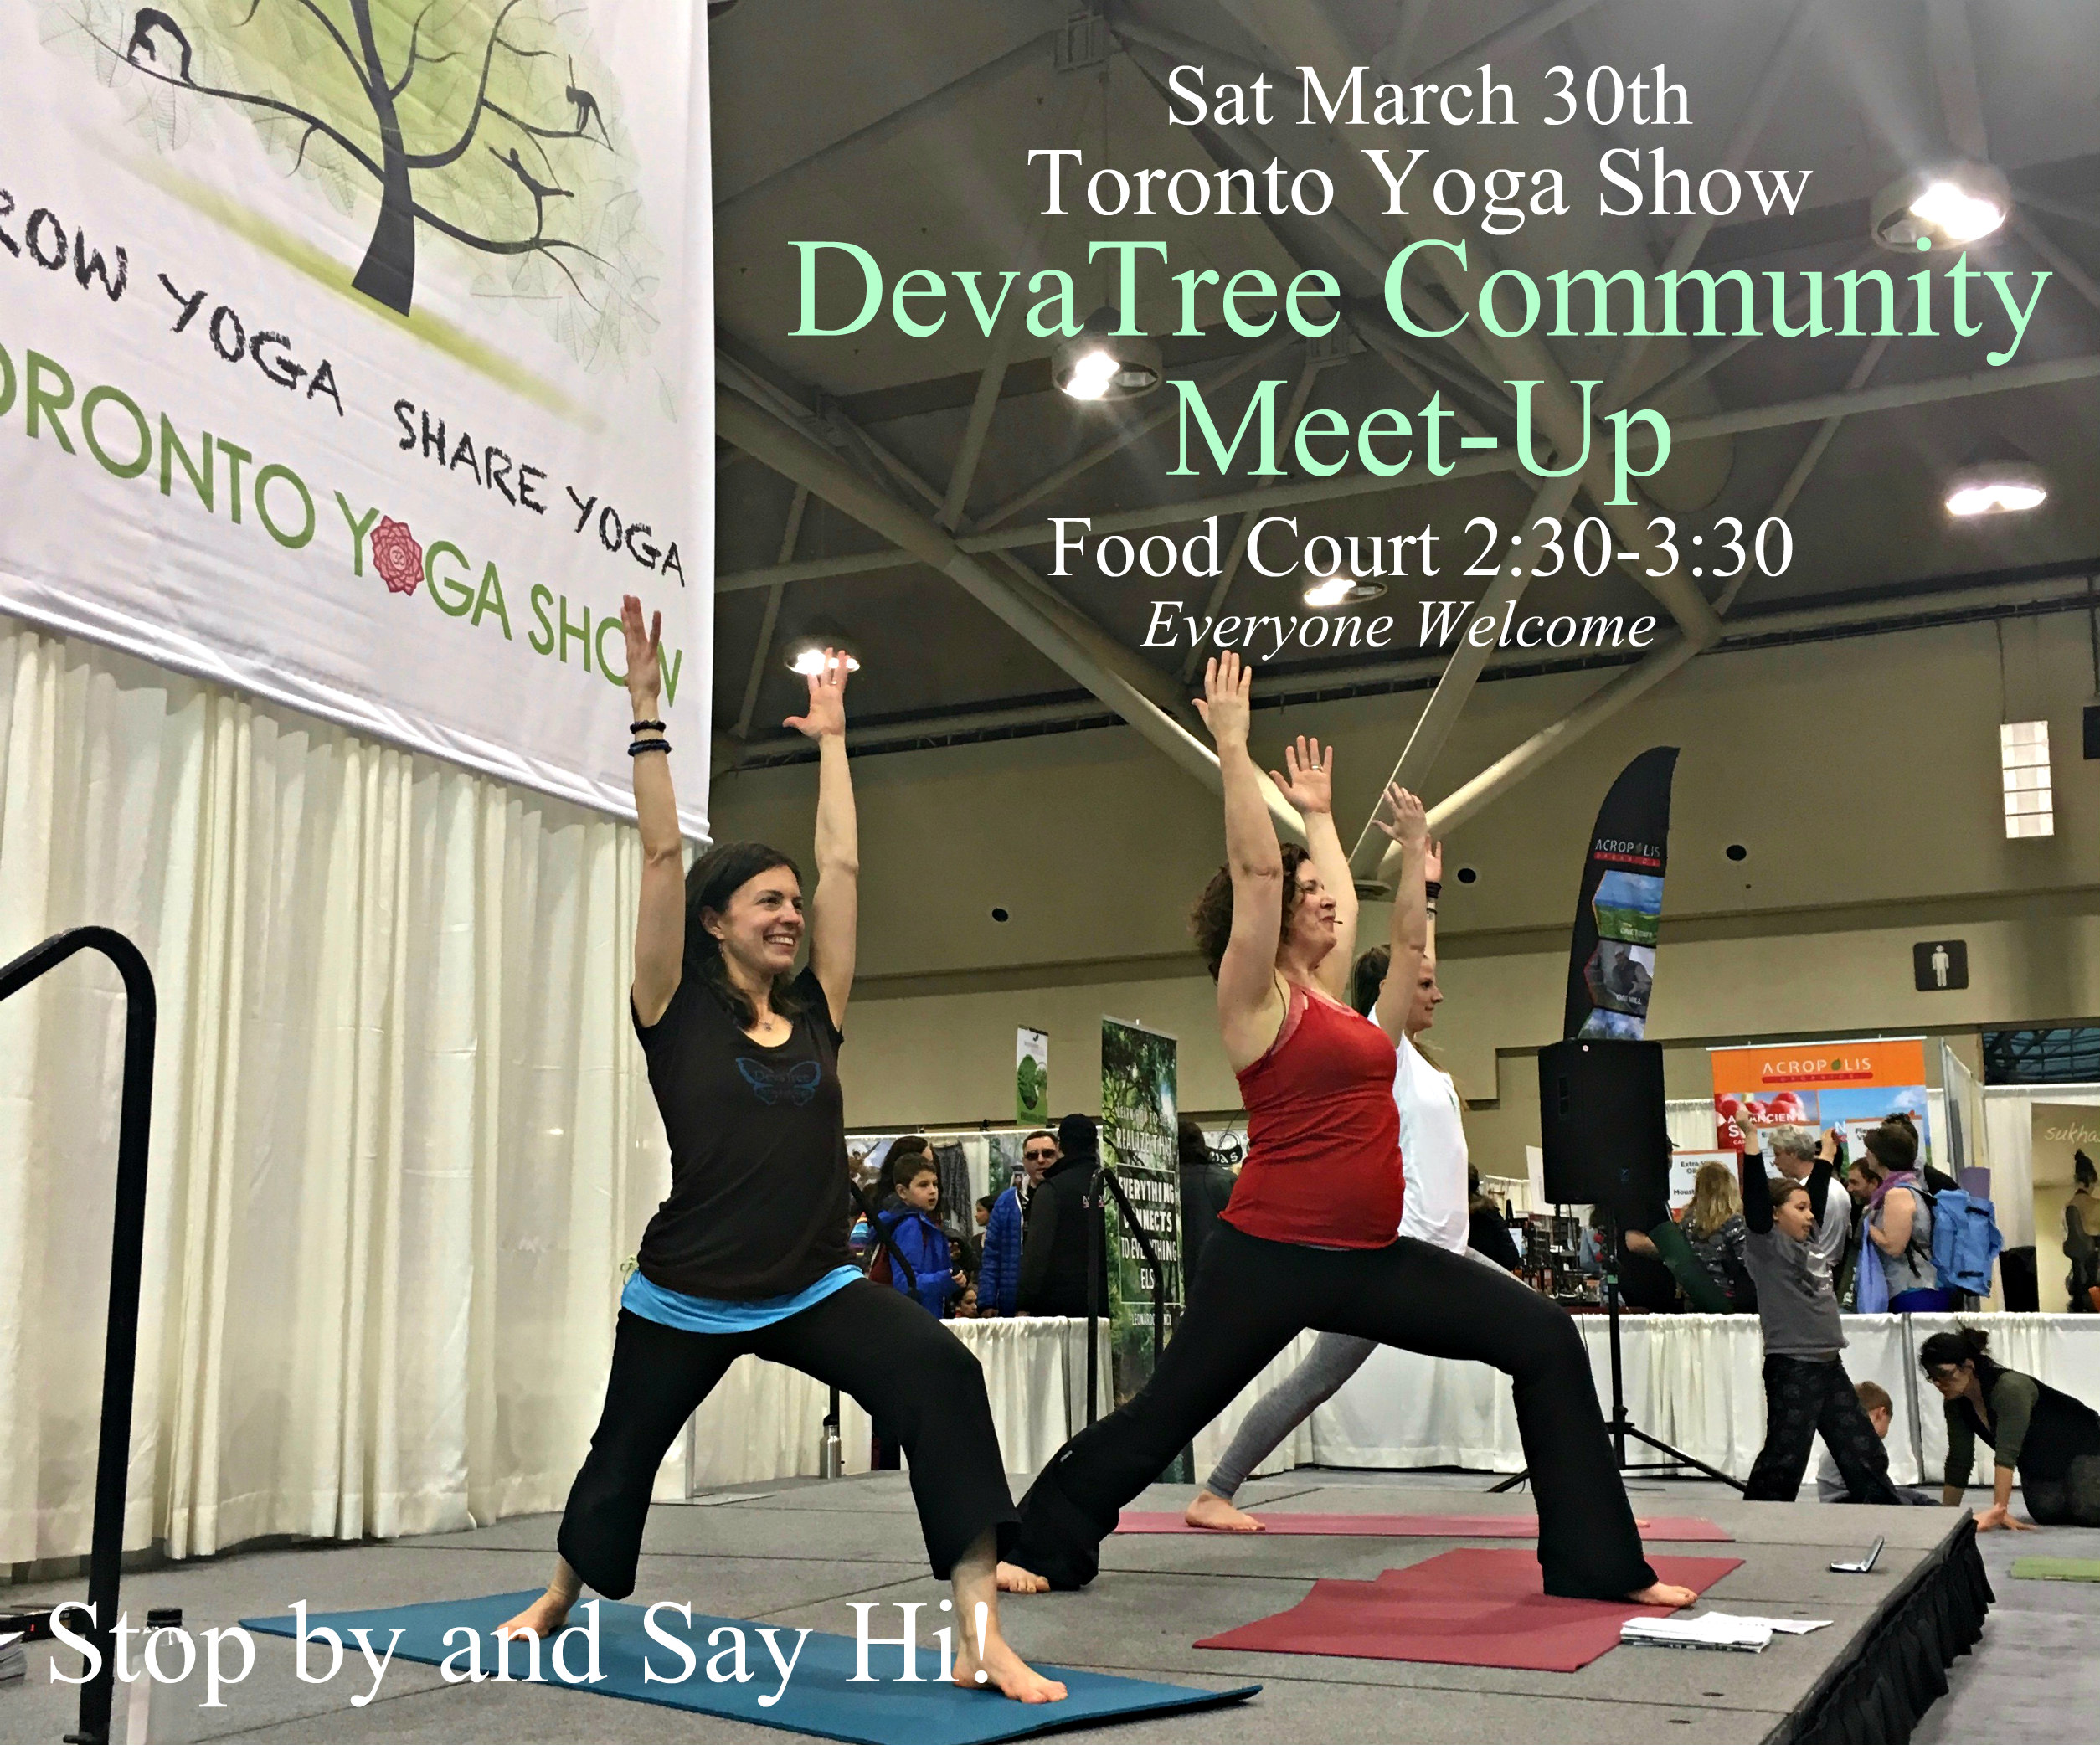 Toronto Yoga Show and Conference in Toronto, Ontario March 30th, 2019